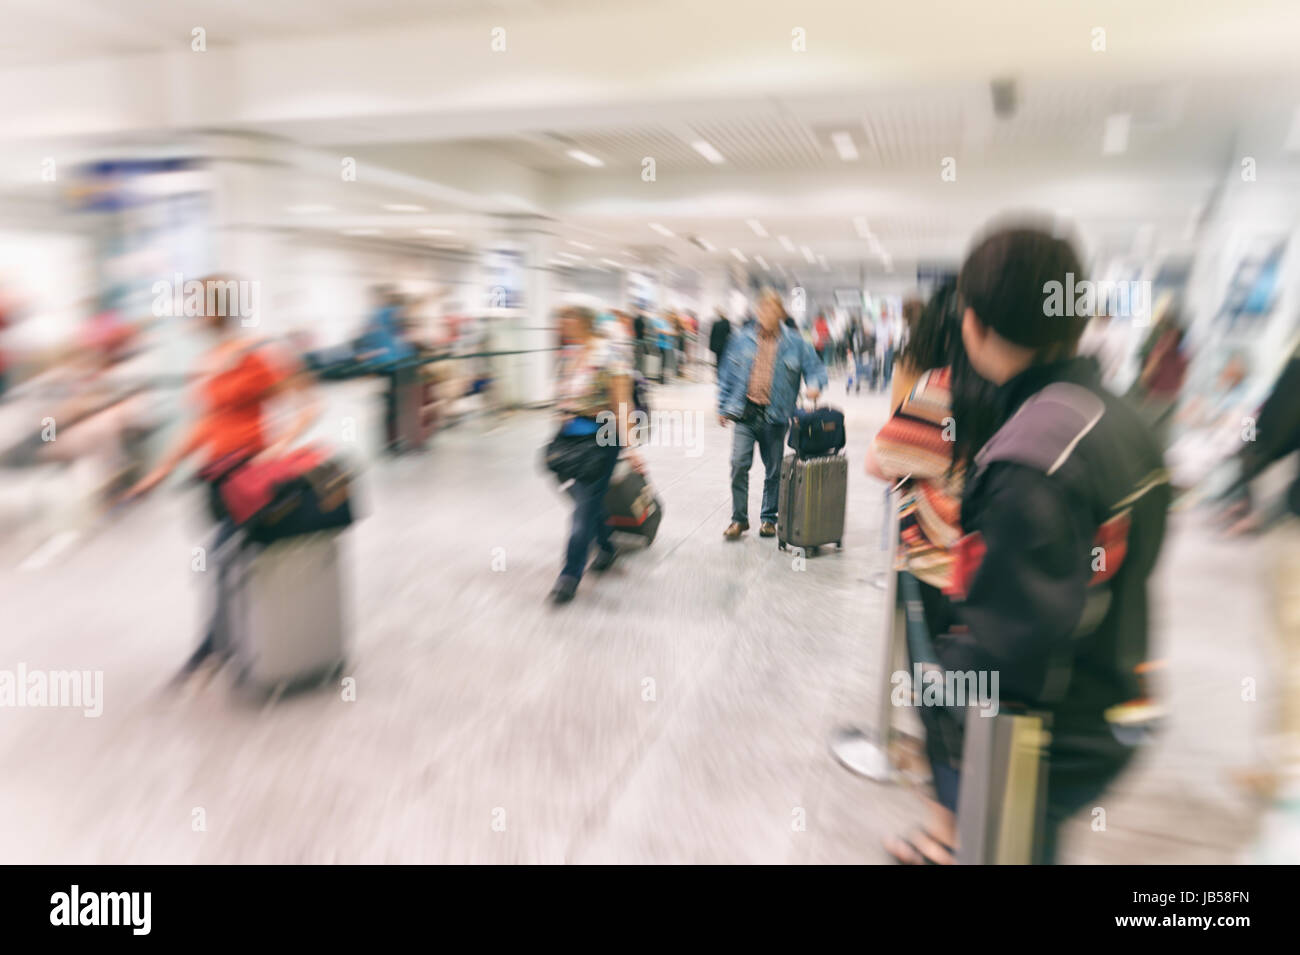 Blurred image of passengers arriving at arrivals gate at international airport - Stock Image